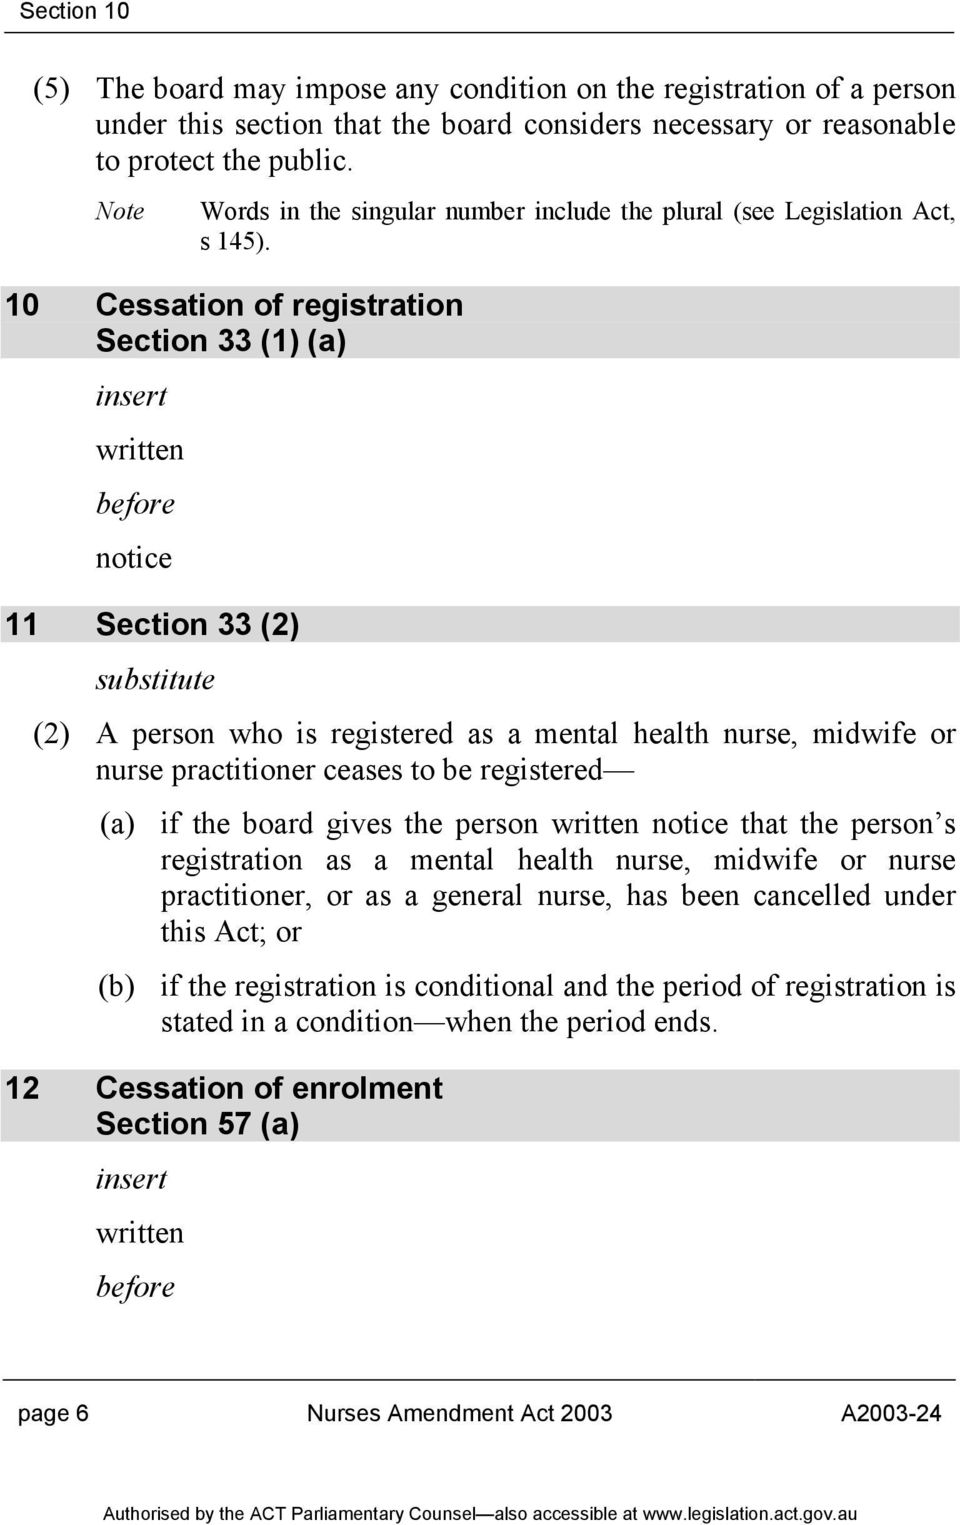 10 Cessation of registration Section 33 (1) (a) insert written before notice 11 Section 33 (2) (2) A person who is registered as a mental health nurse, midwife or nurse practitioner ceases to be